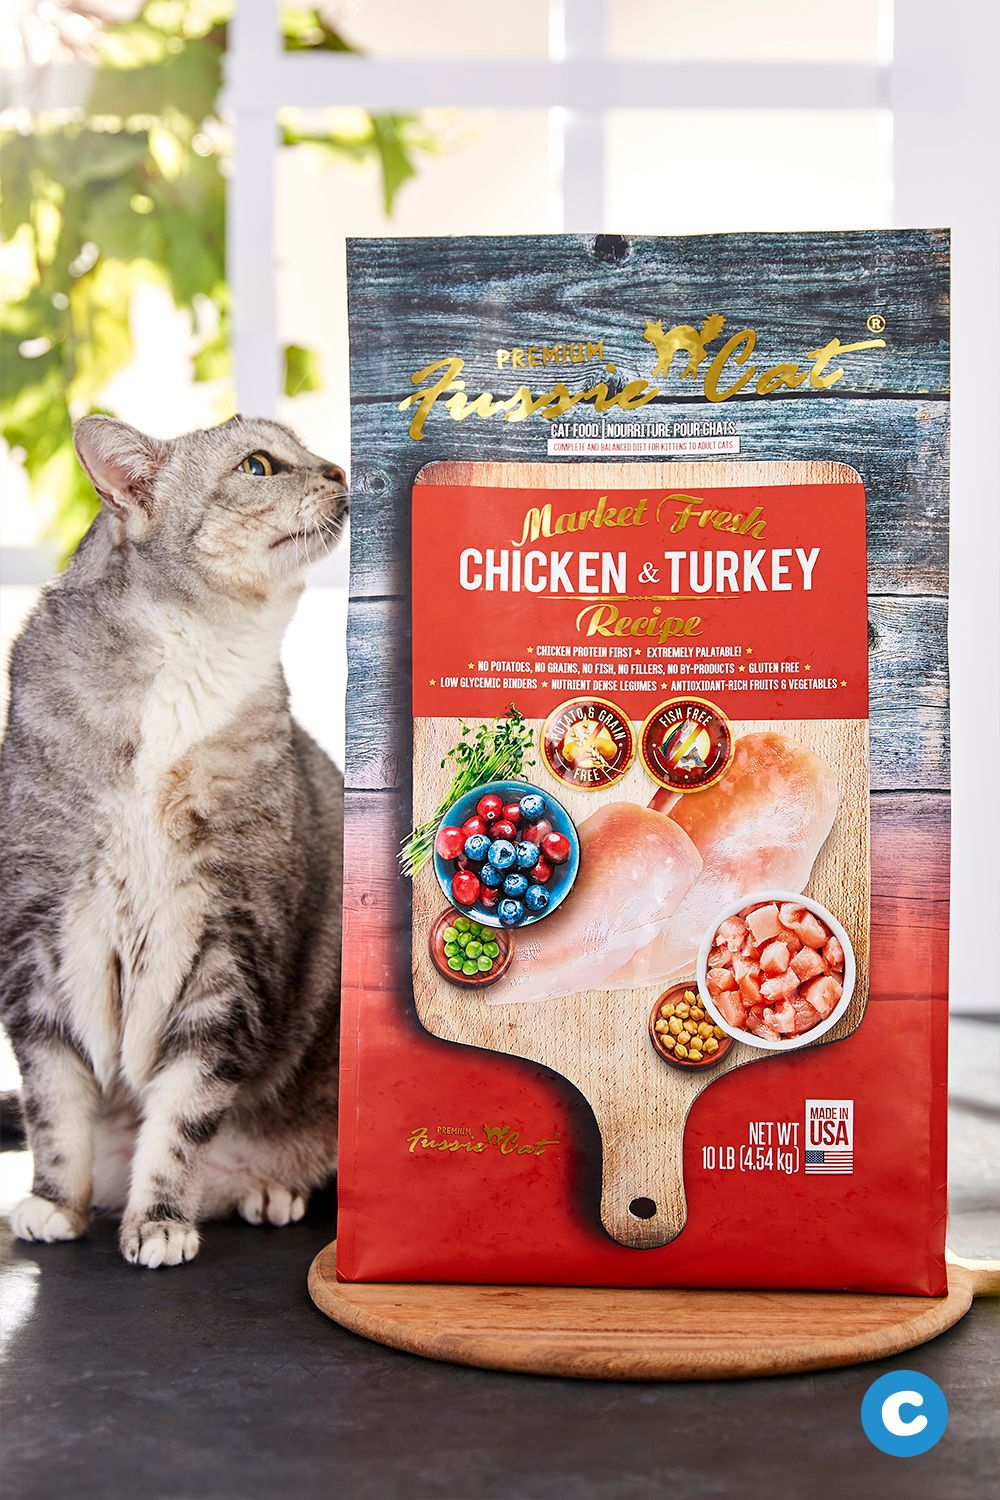 Created with picky eaters in mind, Fussie Cat Market Fresh